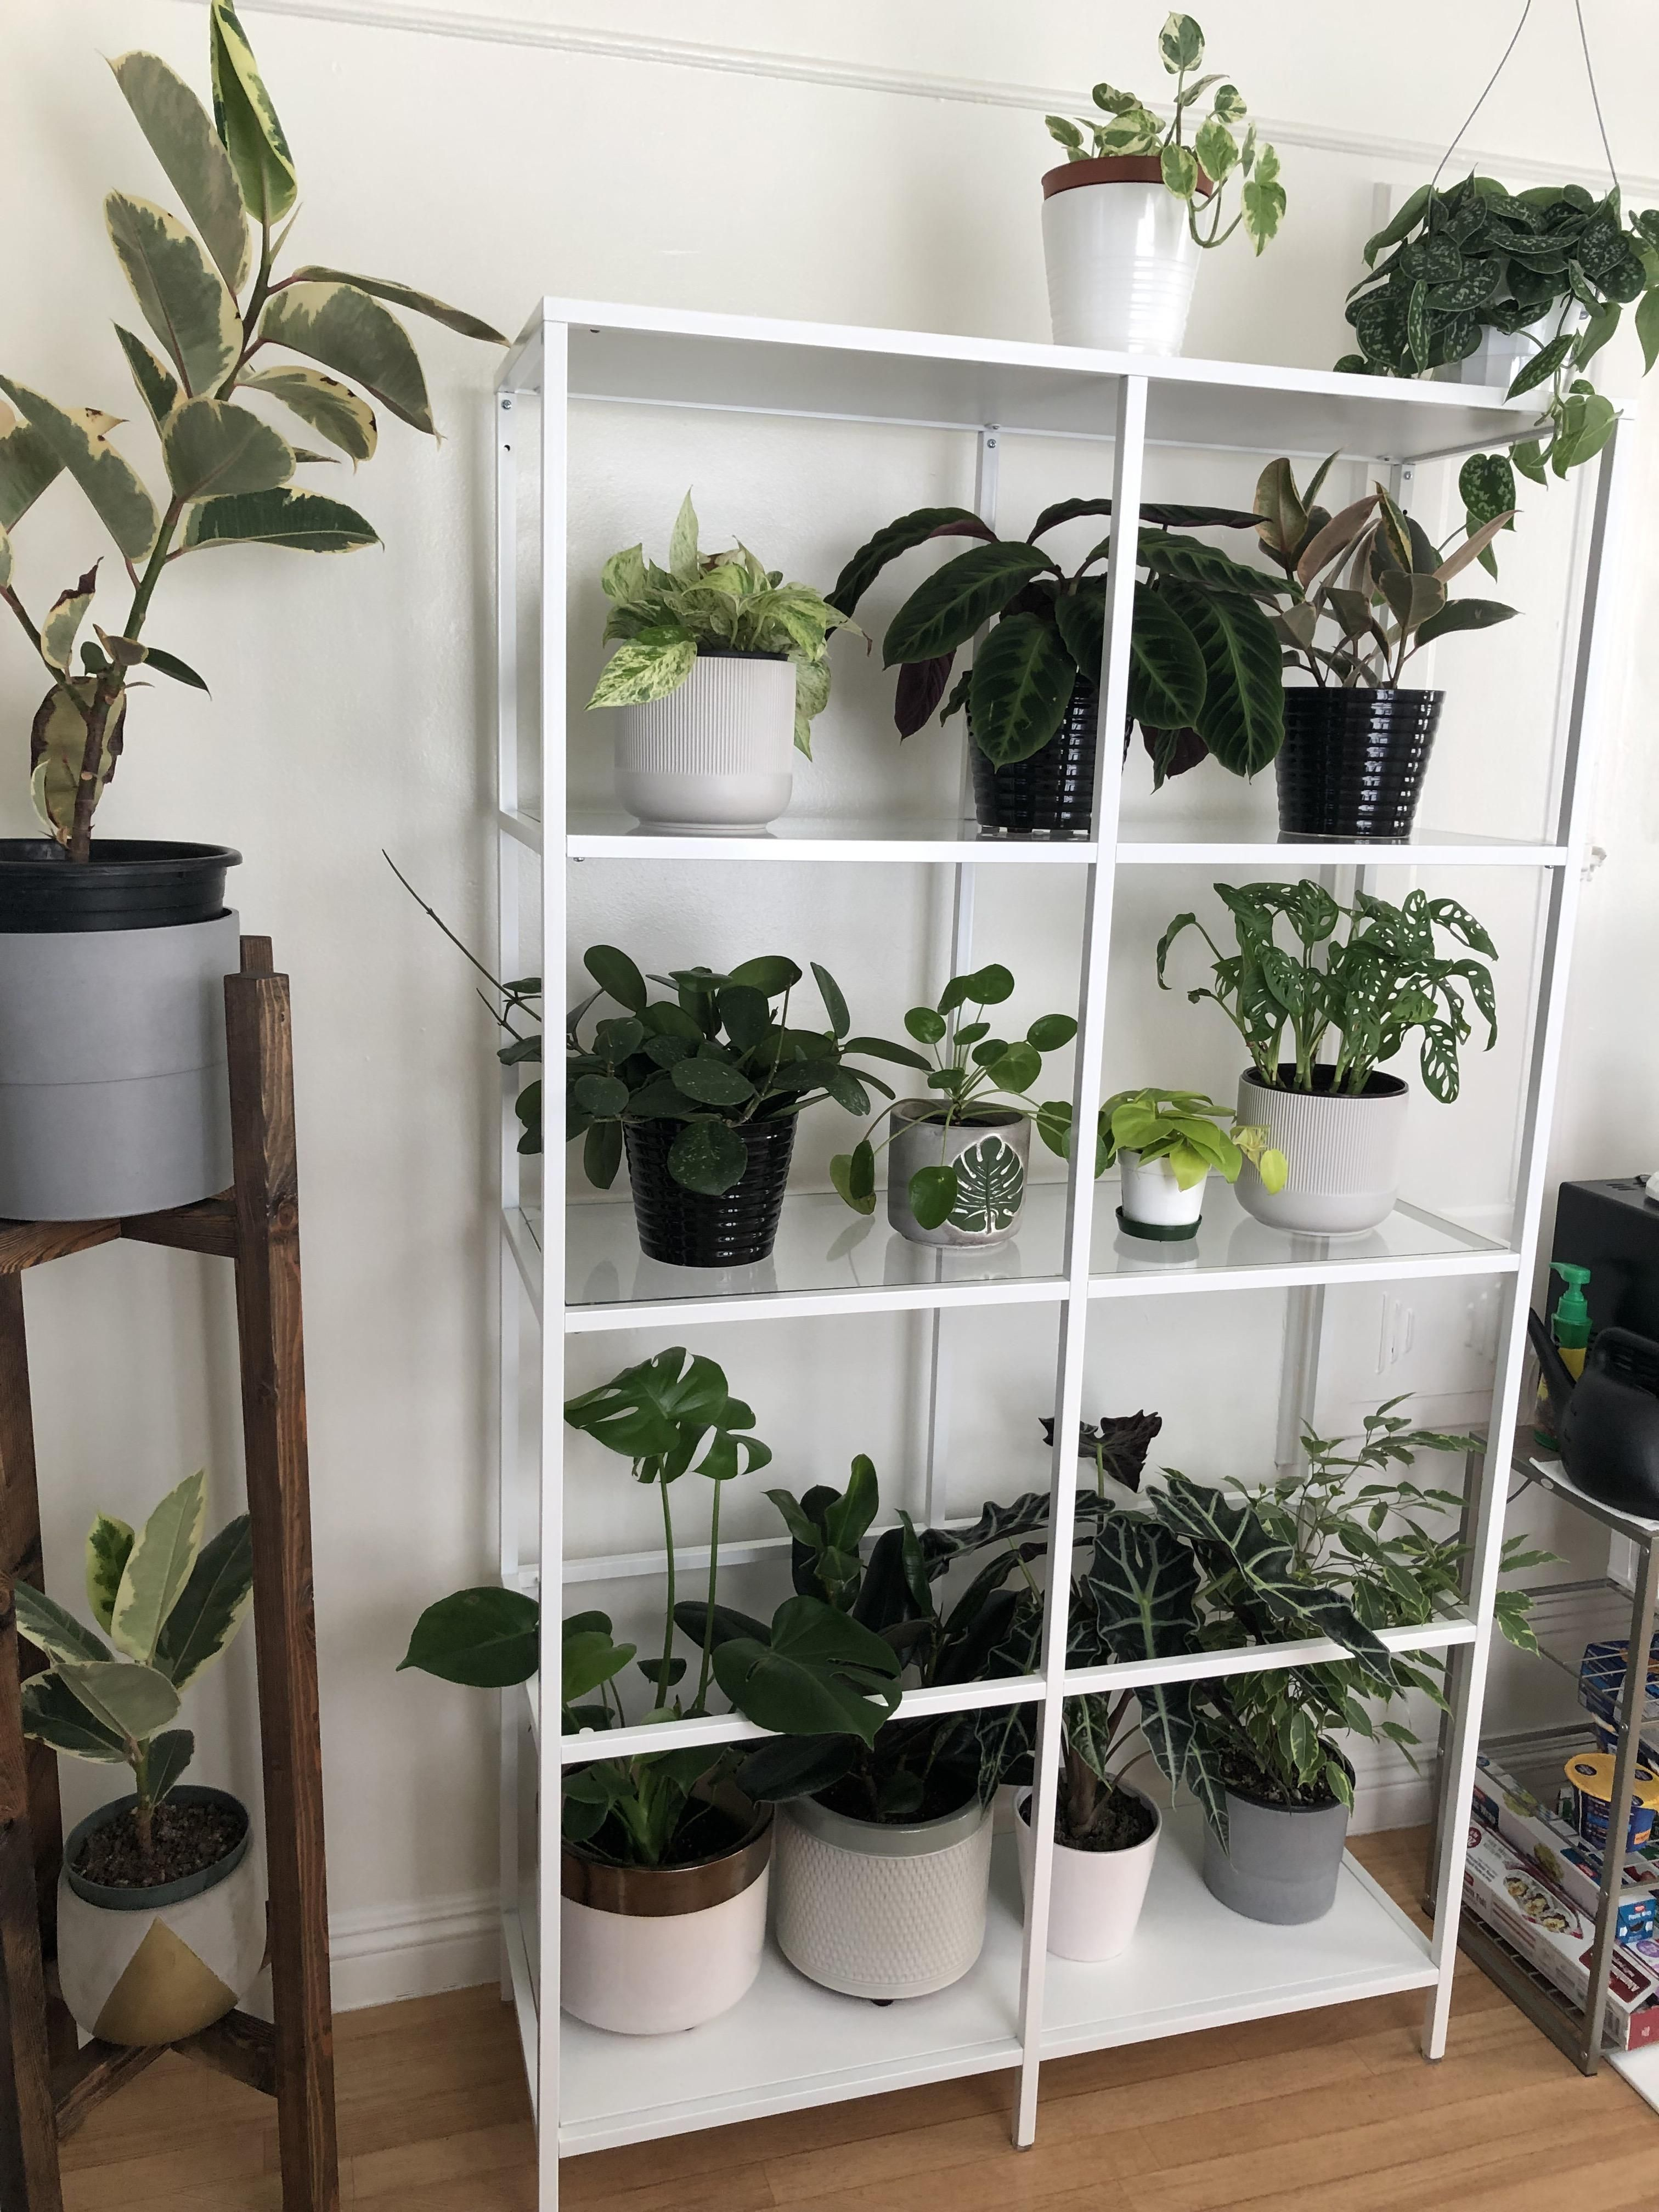 Ikea Shelf Unit For Some Of My Plants It Turned Out So Great